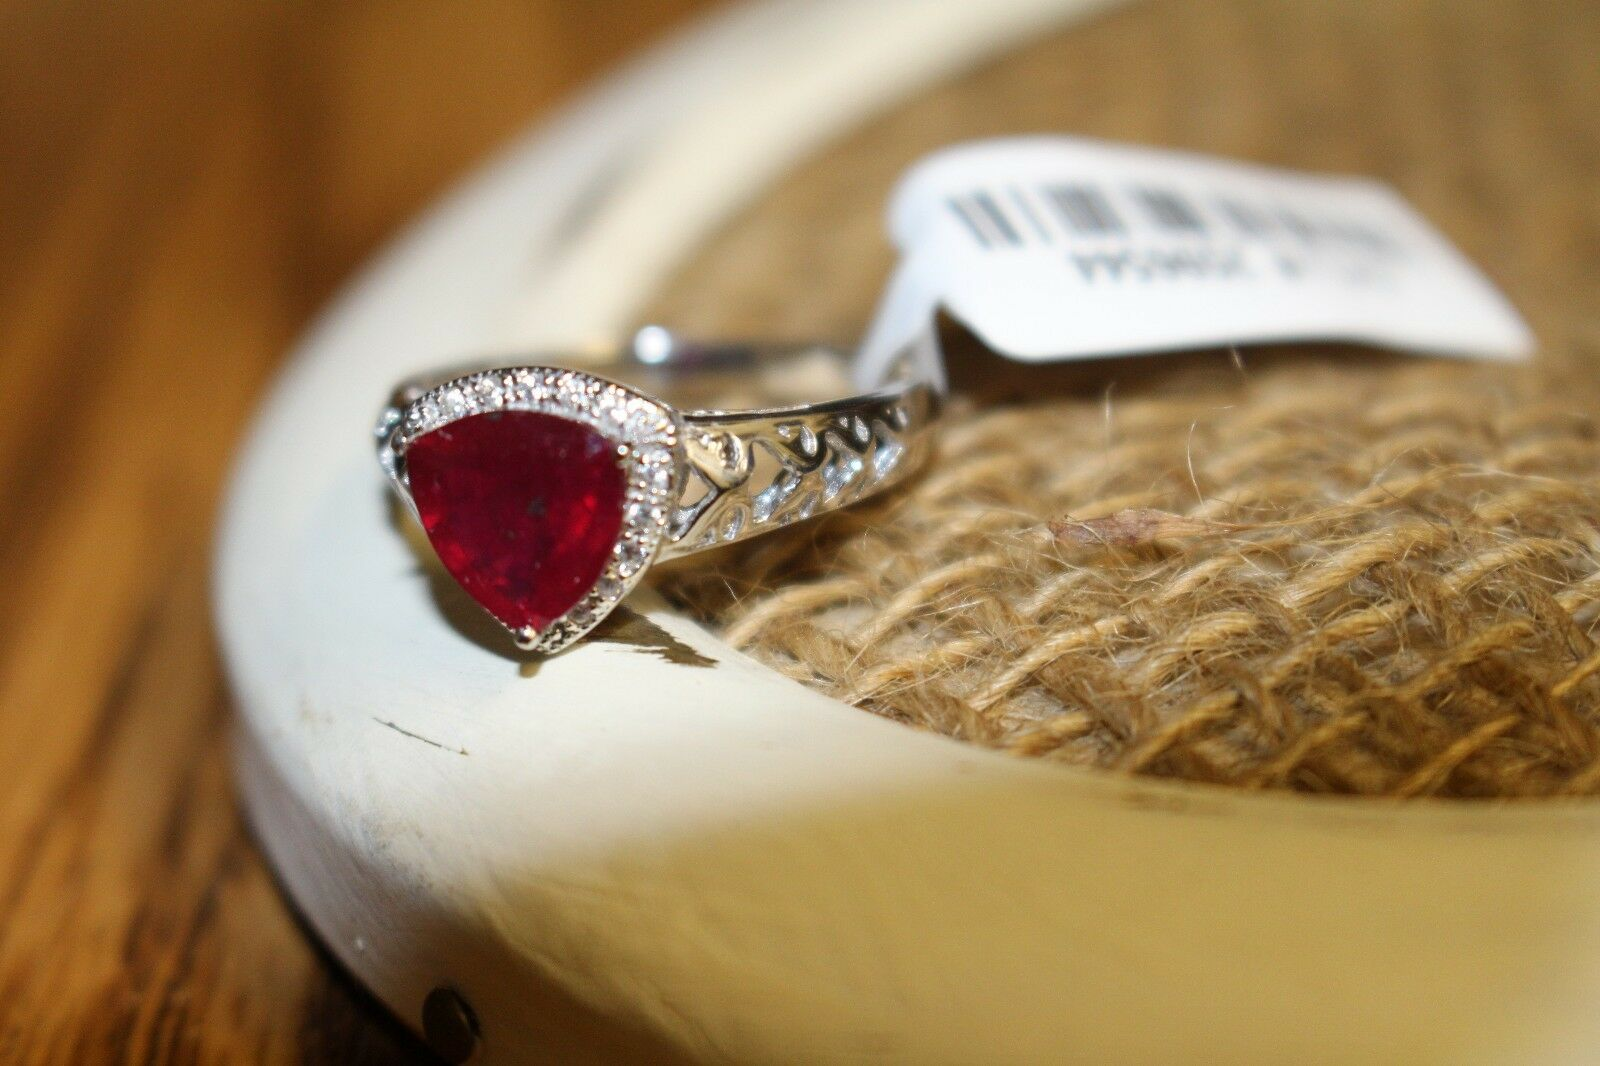 Ruby and White Zircon Ring, 2.340 TGW, Size 8 NWT and gift box